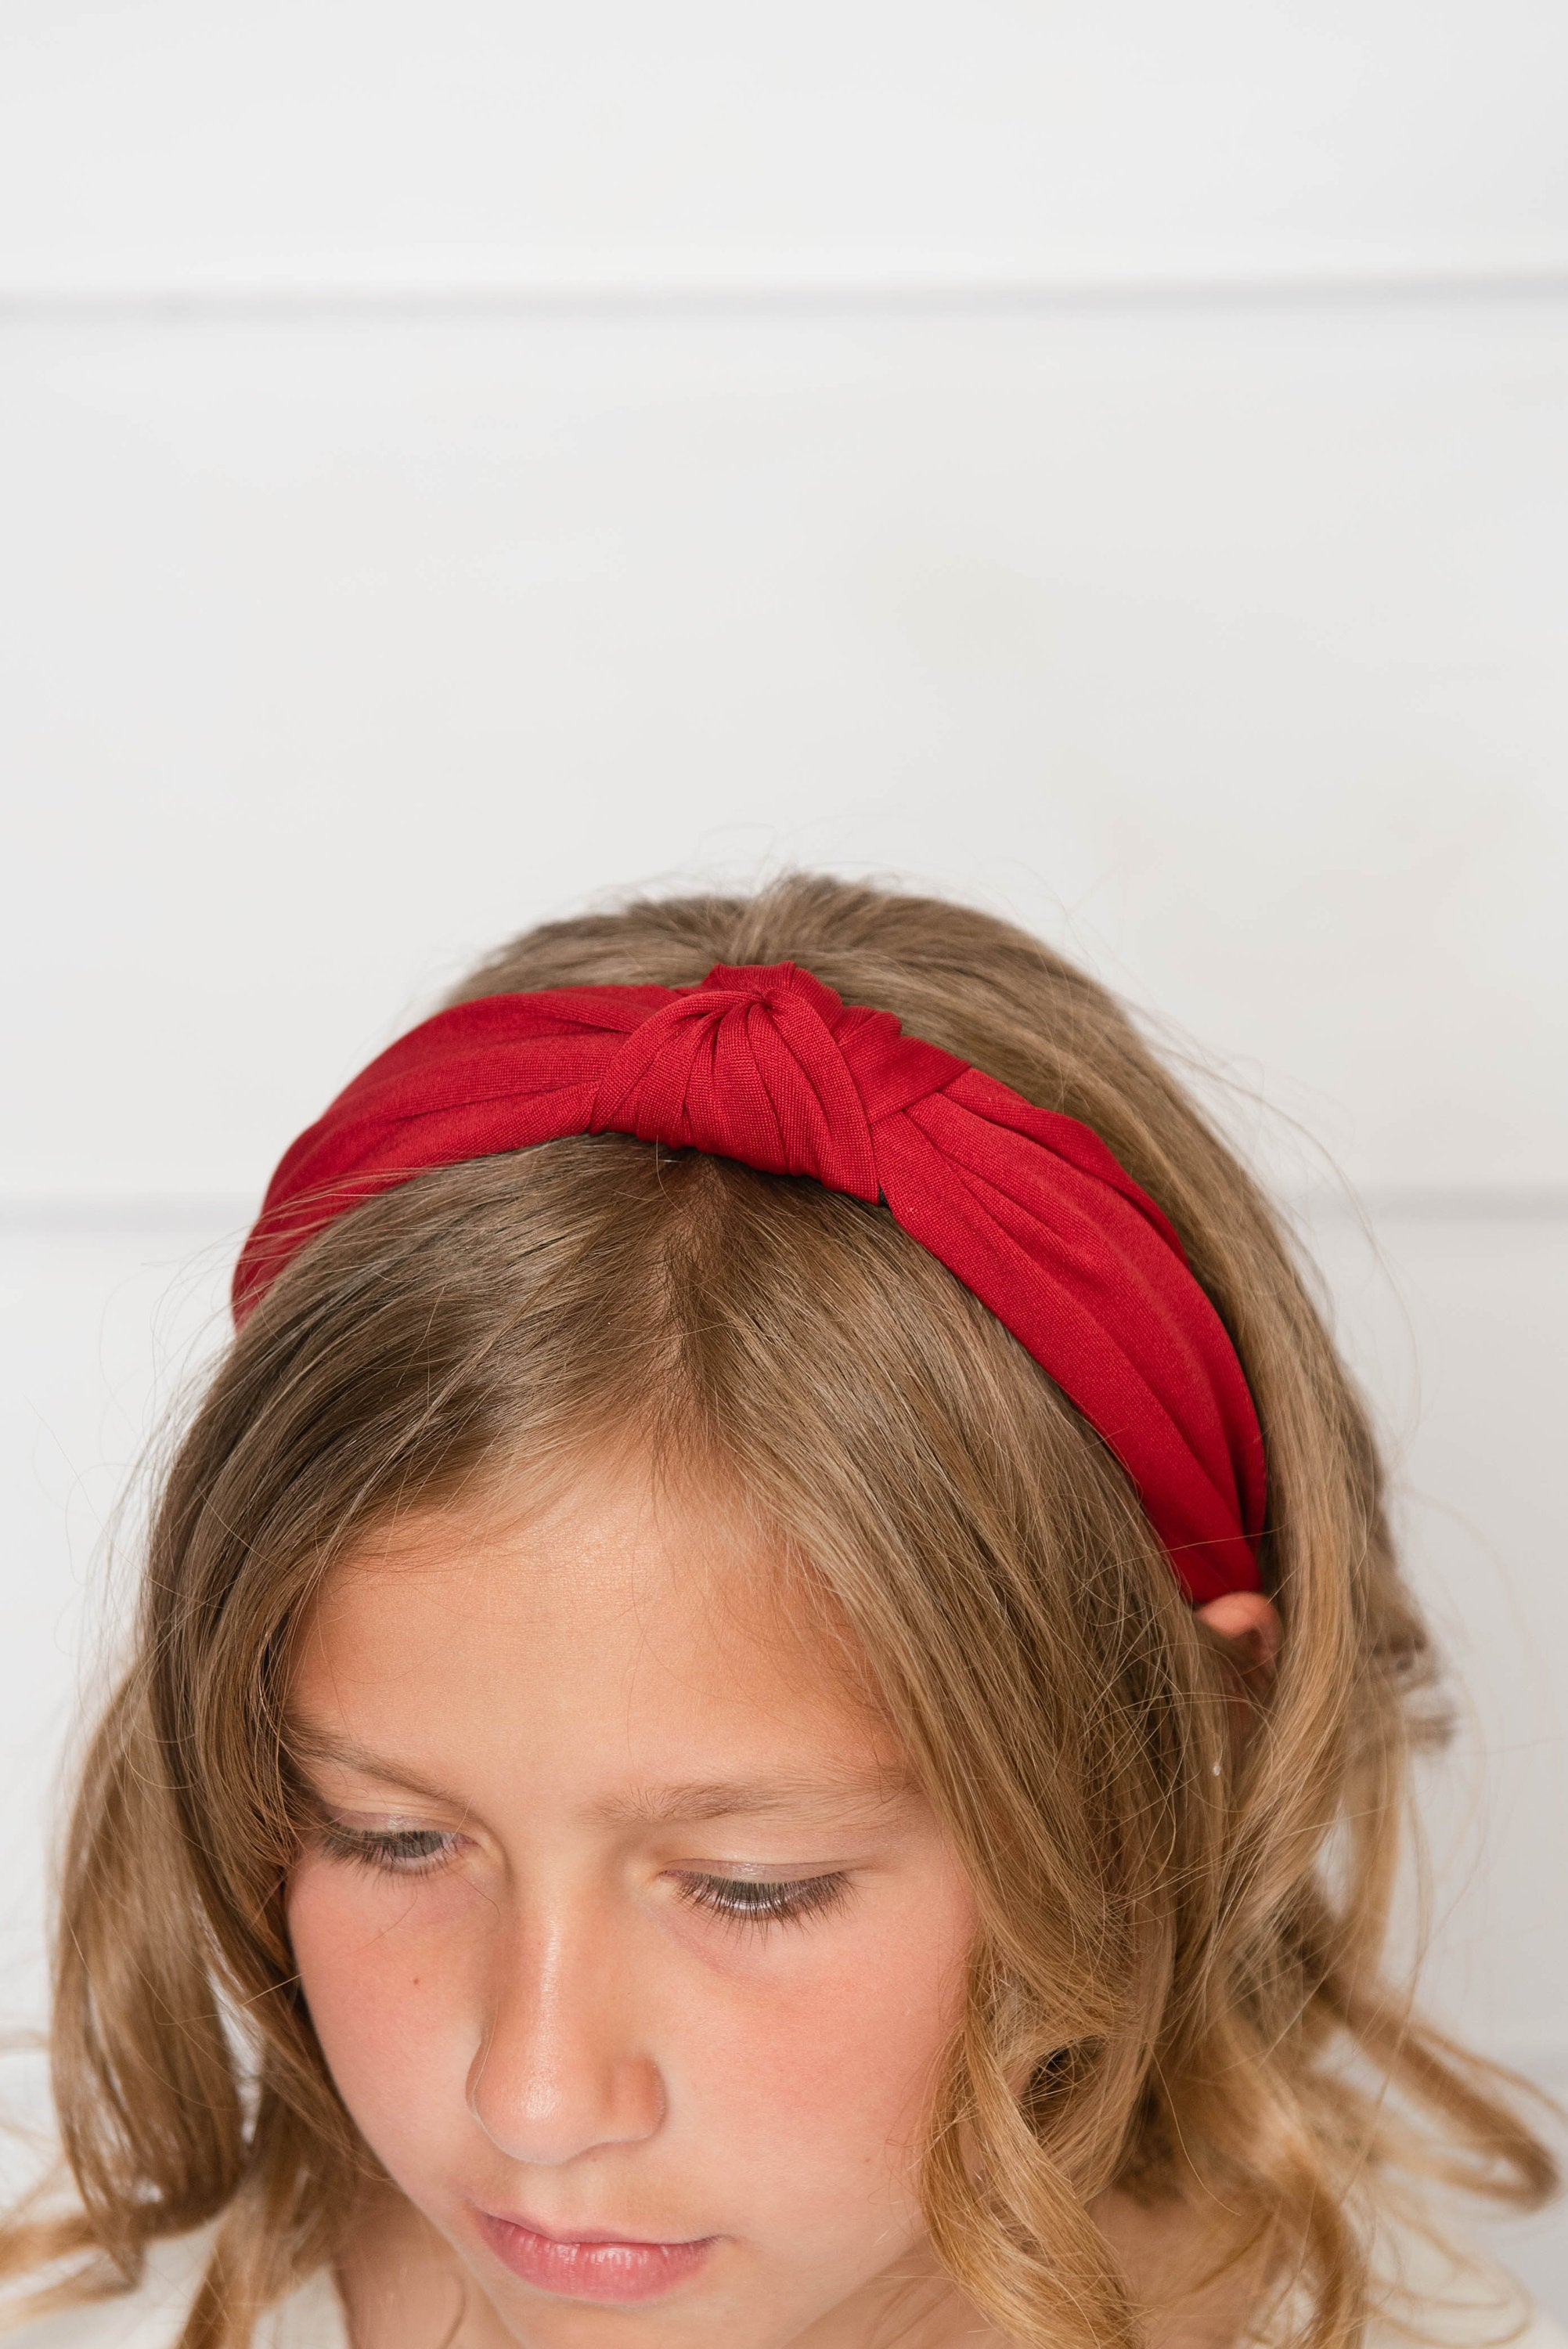 red knotted hard headband for girl, red womens hard headband for women, red girl headband, red knotted headband for women's headband, turban